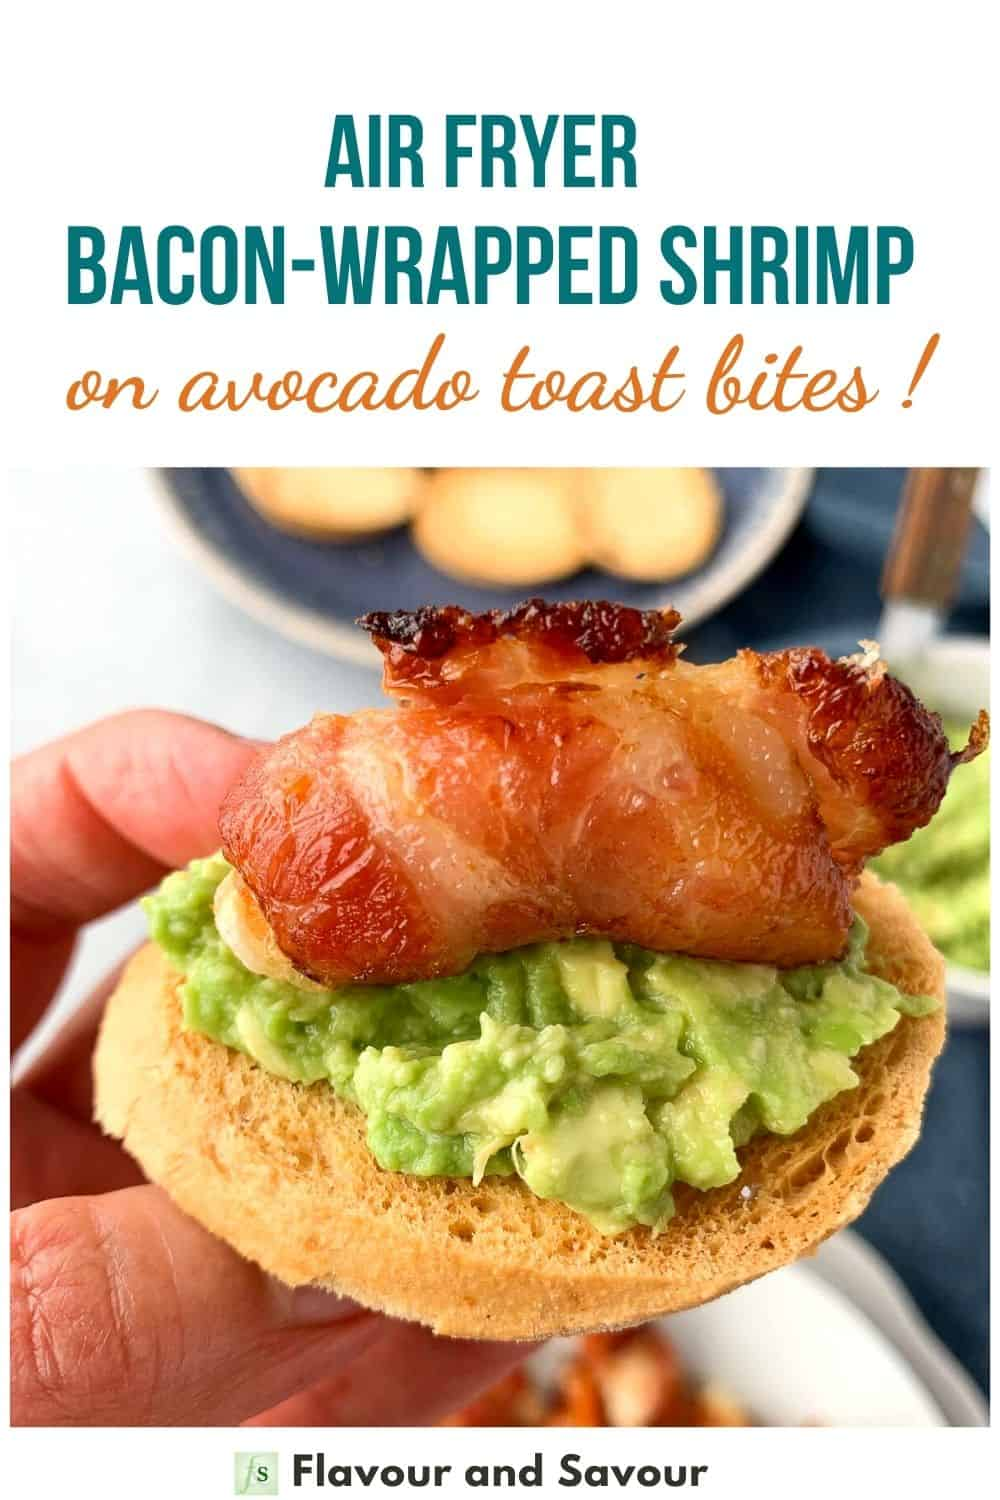 text and image for air fryer bacon wrapped shrimp tapas